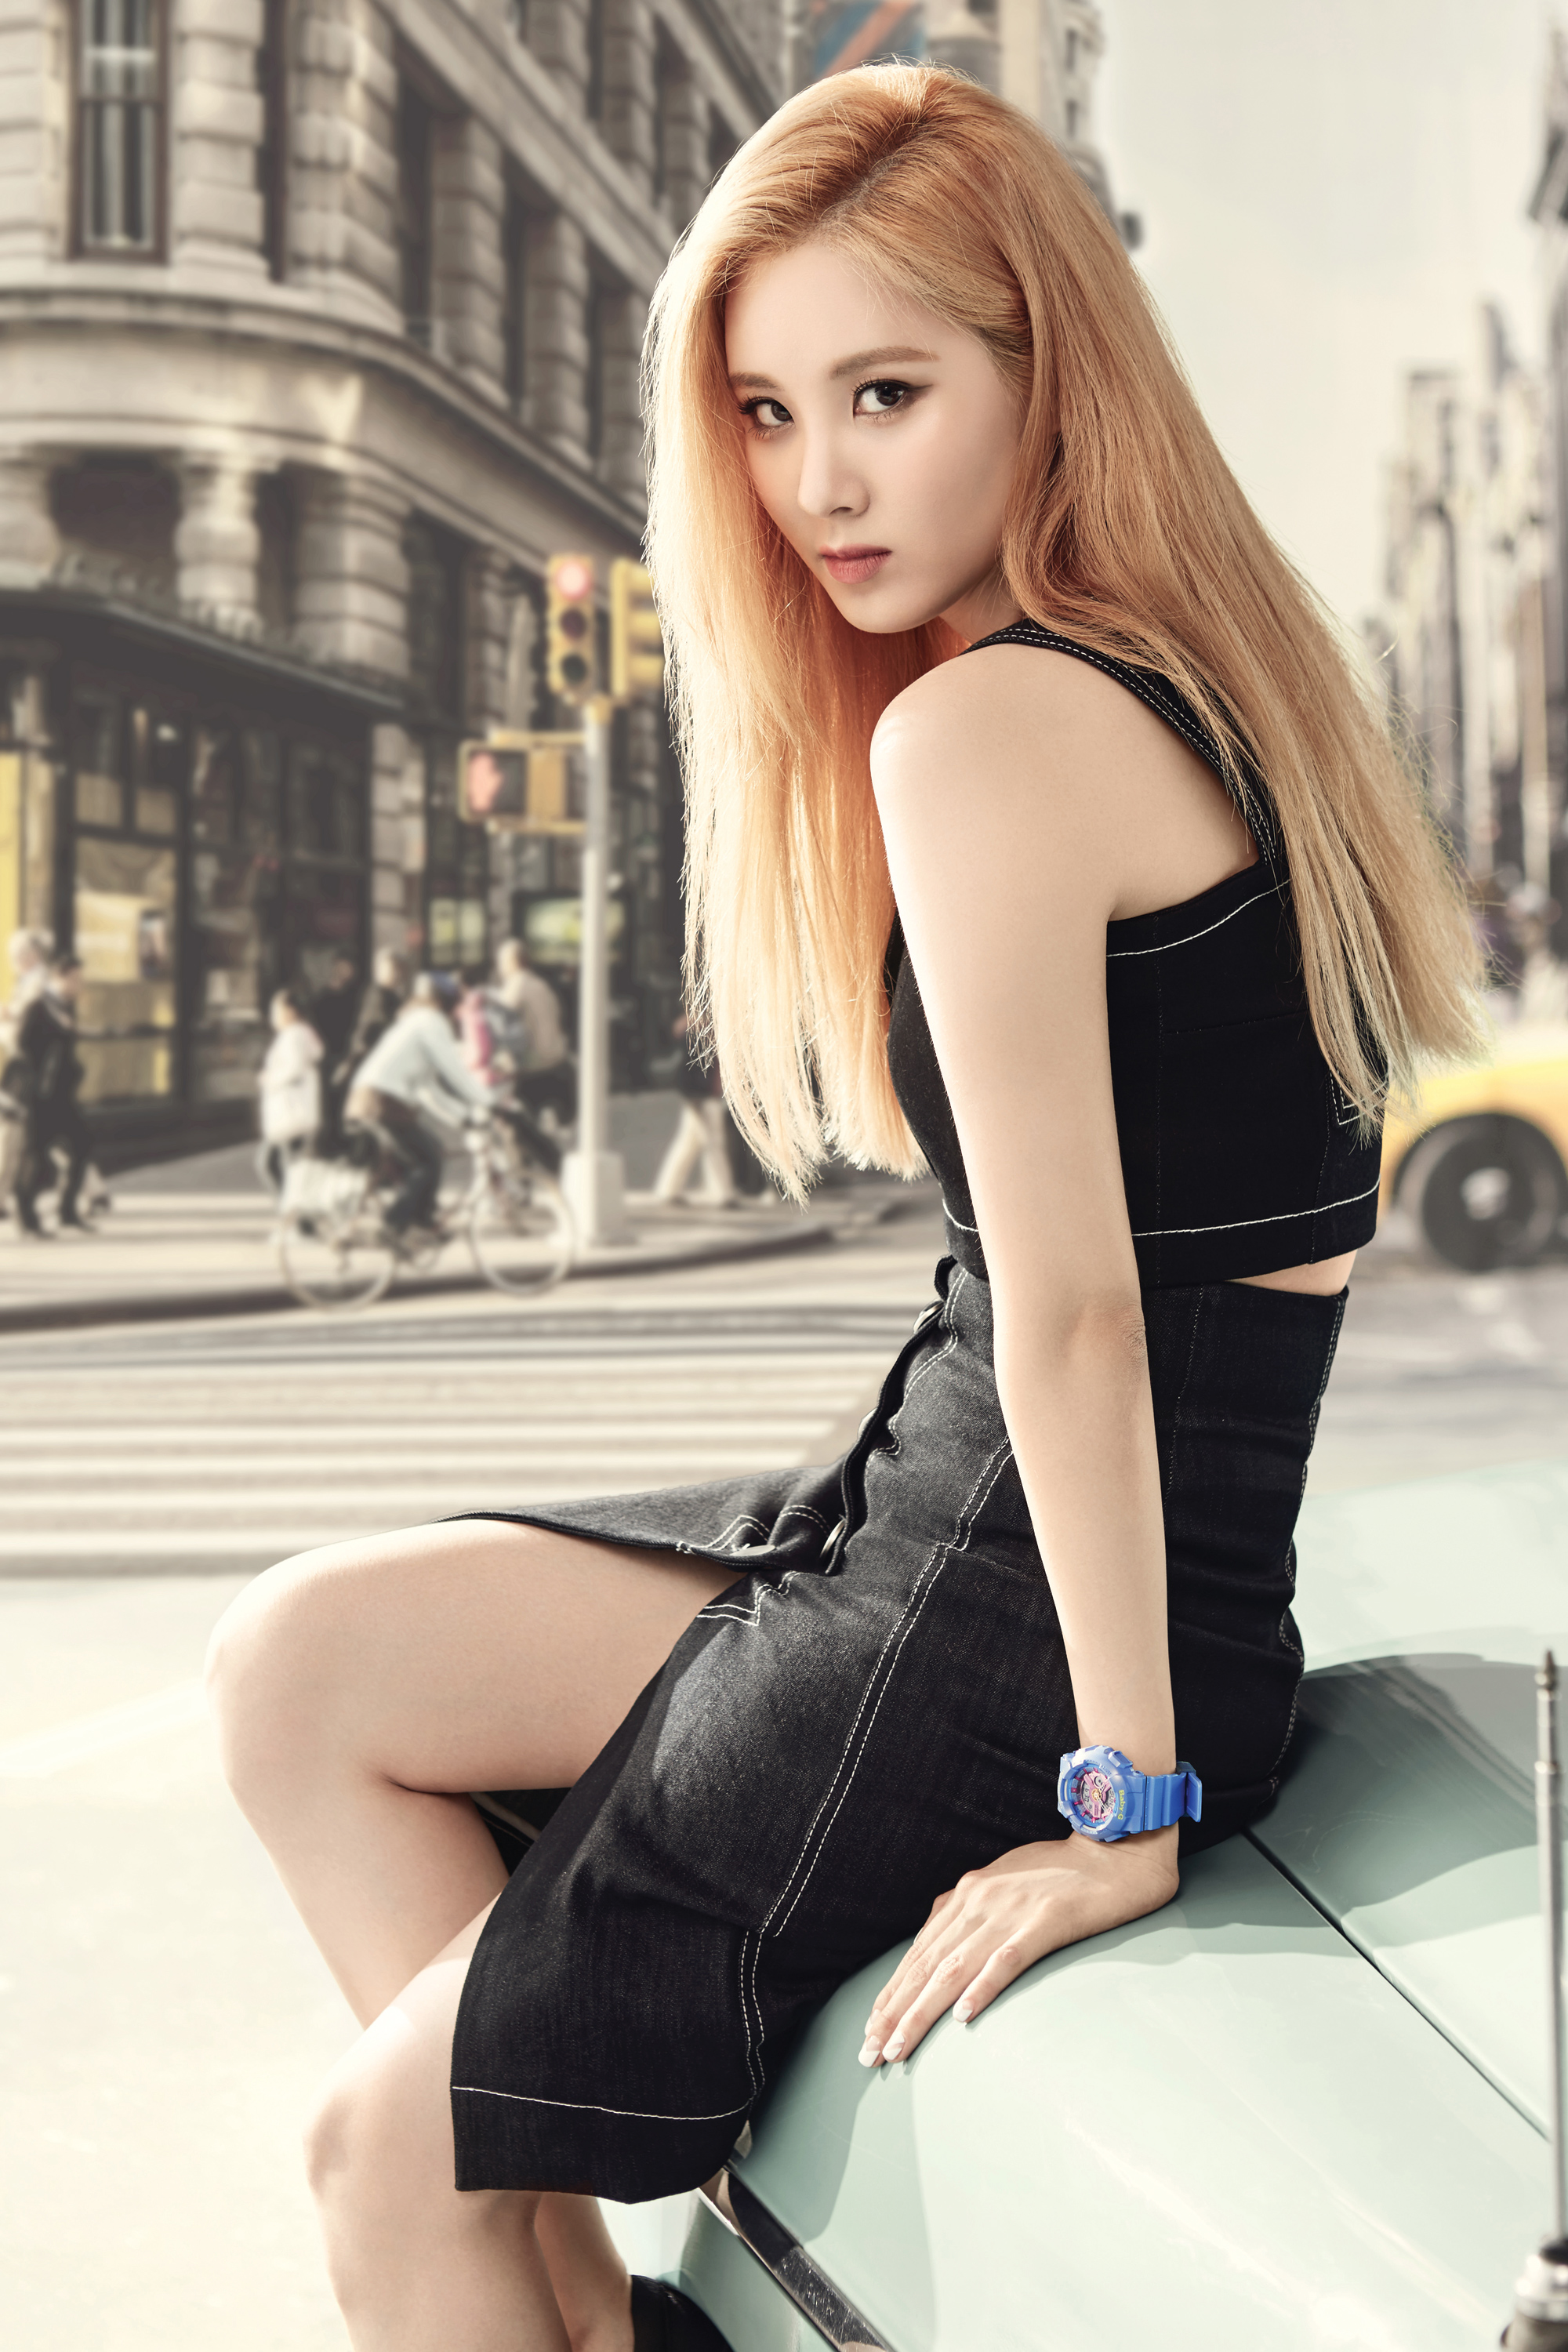 SoShi - Casio Baby-G Promotional Pictures | Manuth Chek's ...